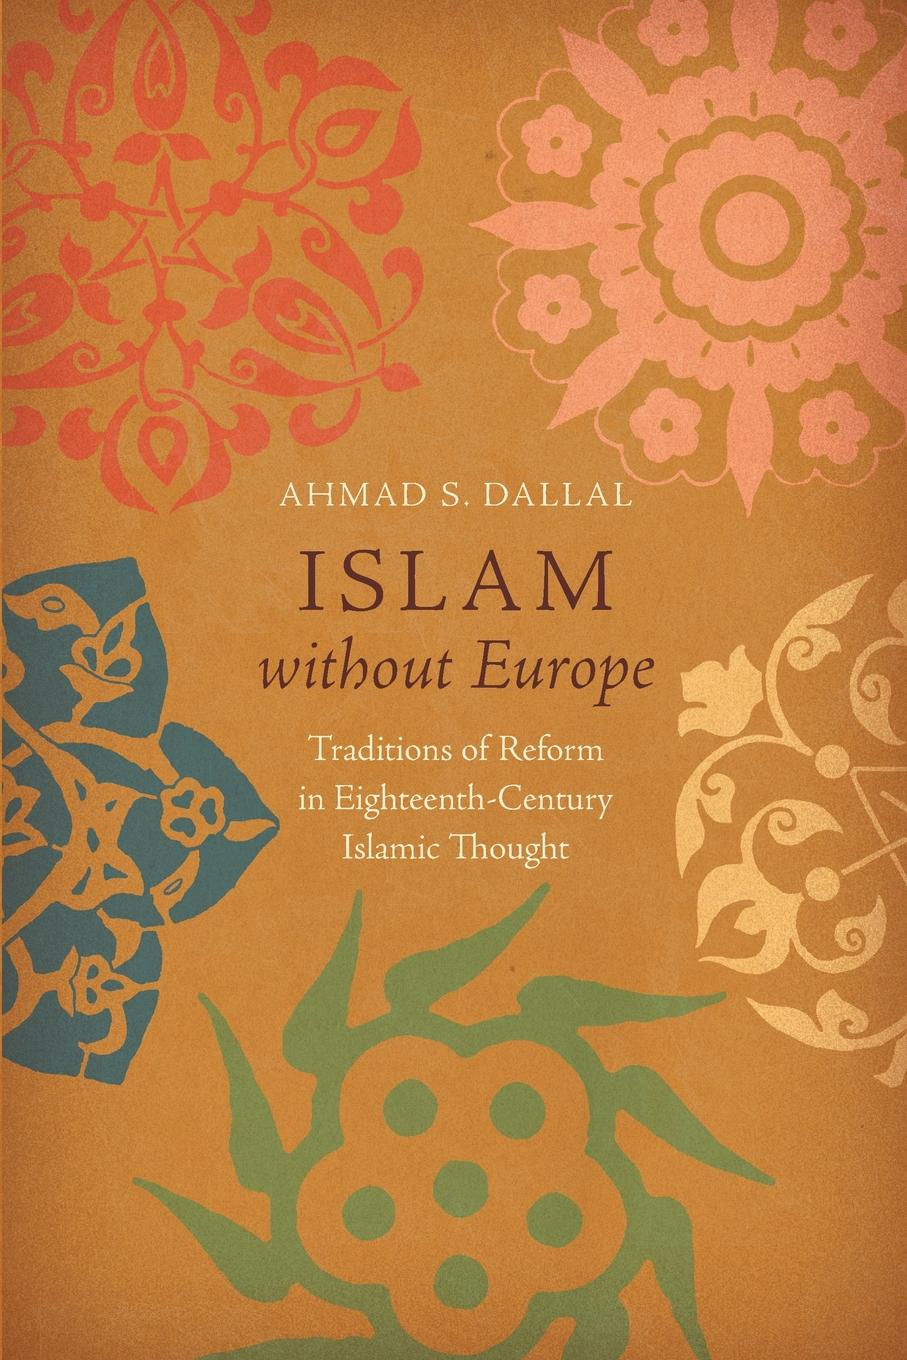 Ahmad S. Dallal Islam without Europe. Traditions of Reform in Eighteenth-Century Islamic Thought islamic muslim culture surah arabic bismillah allah vinyl stickers